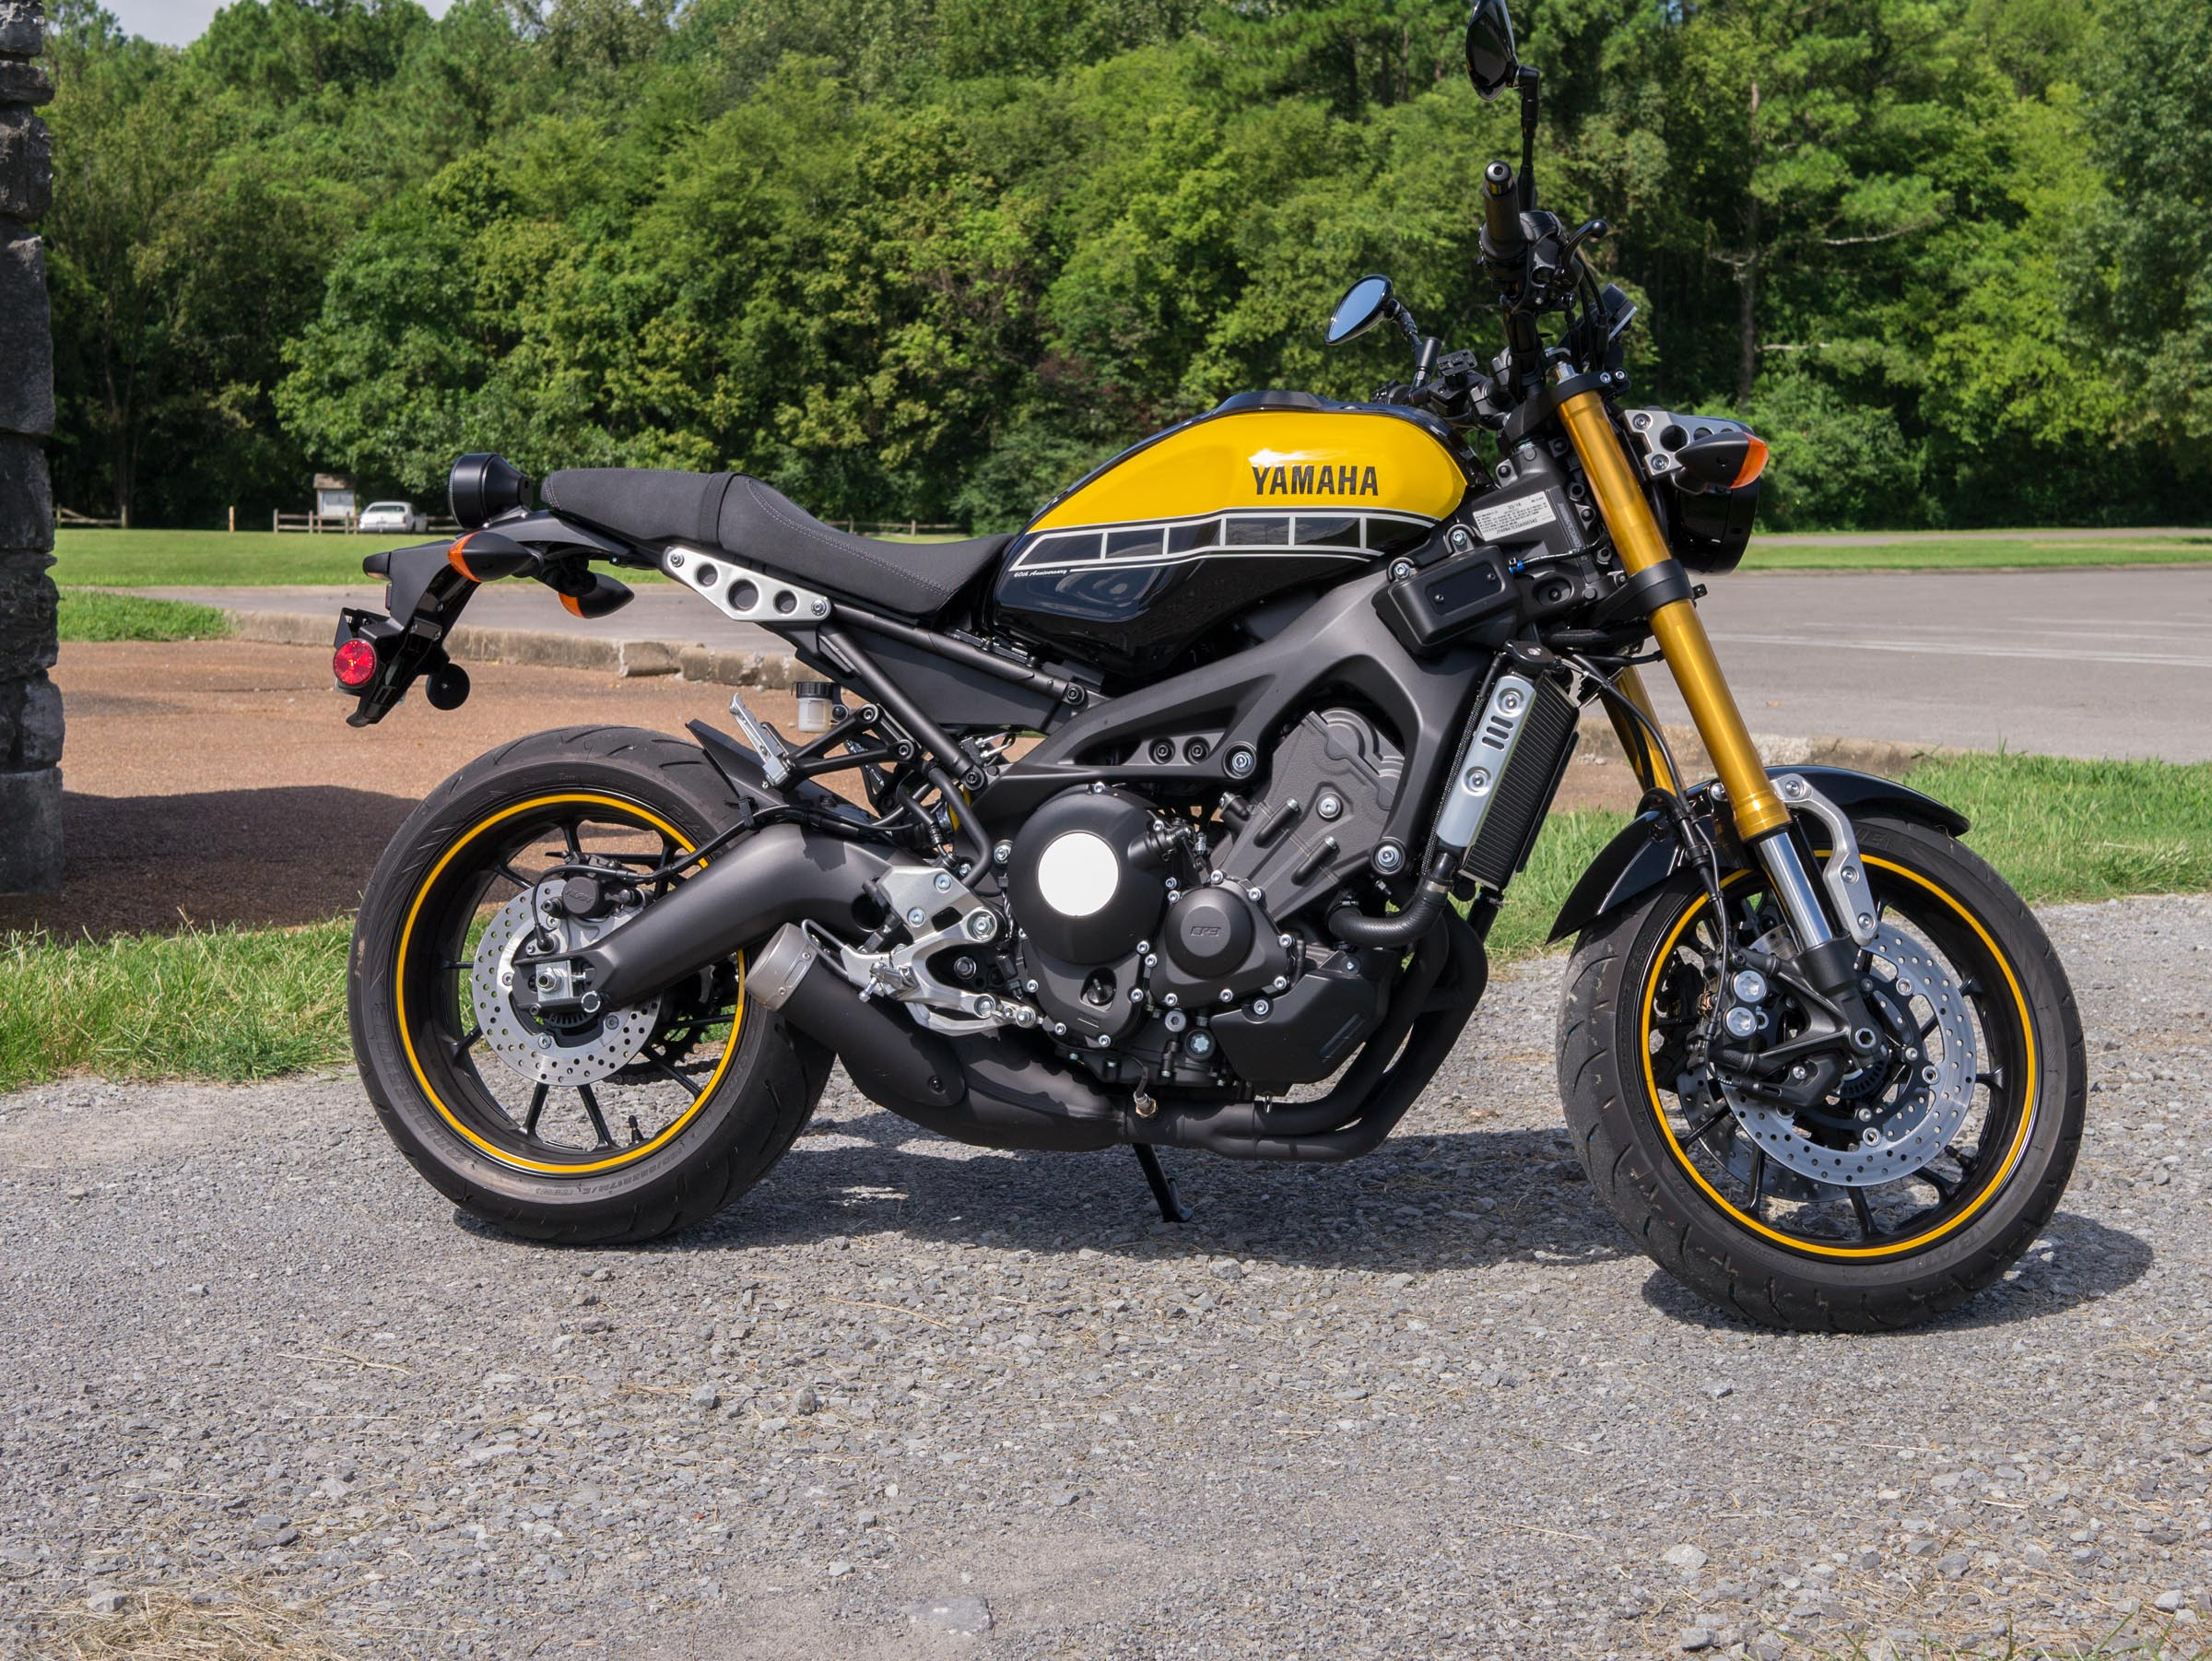 Yamaha xsr 900 first impressions review wbw motorcycle for Yamaha xsr 900